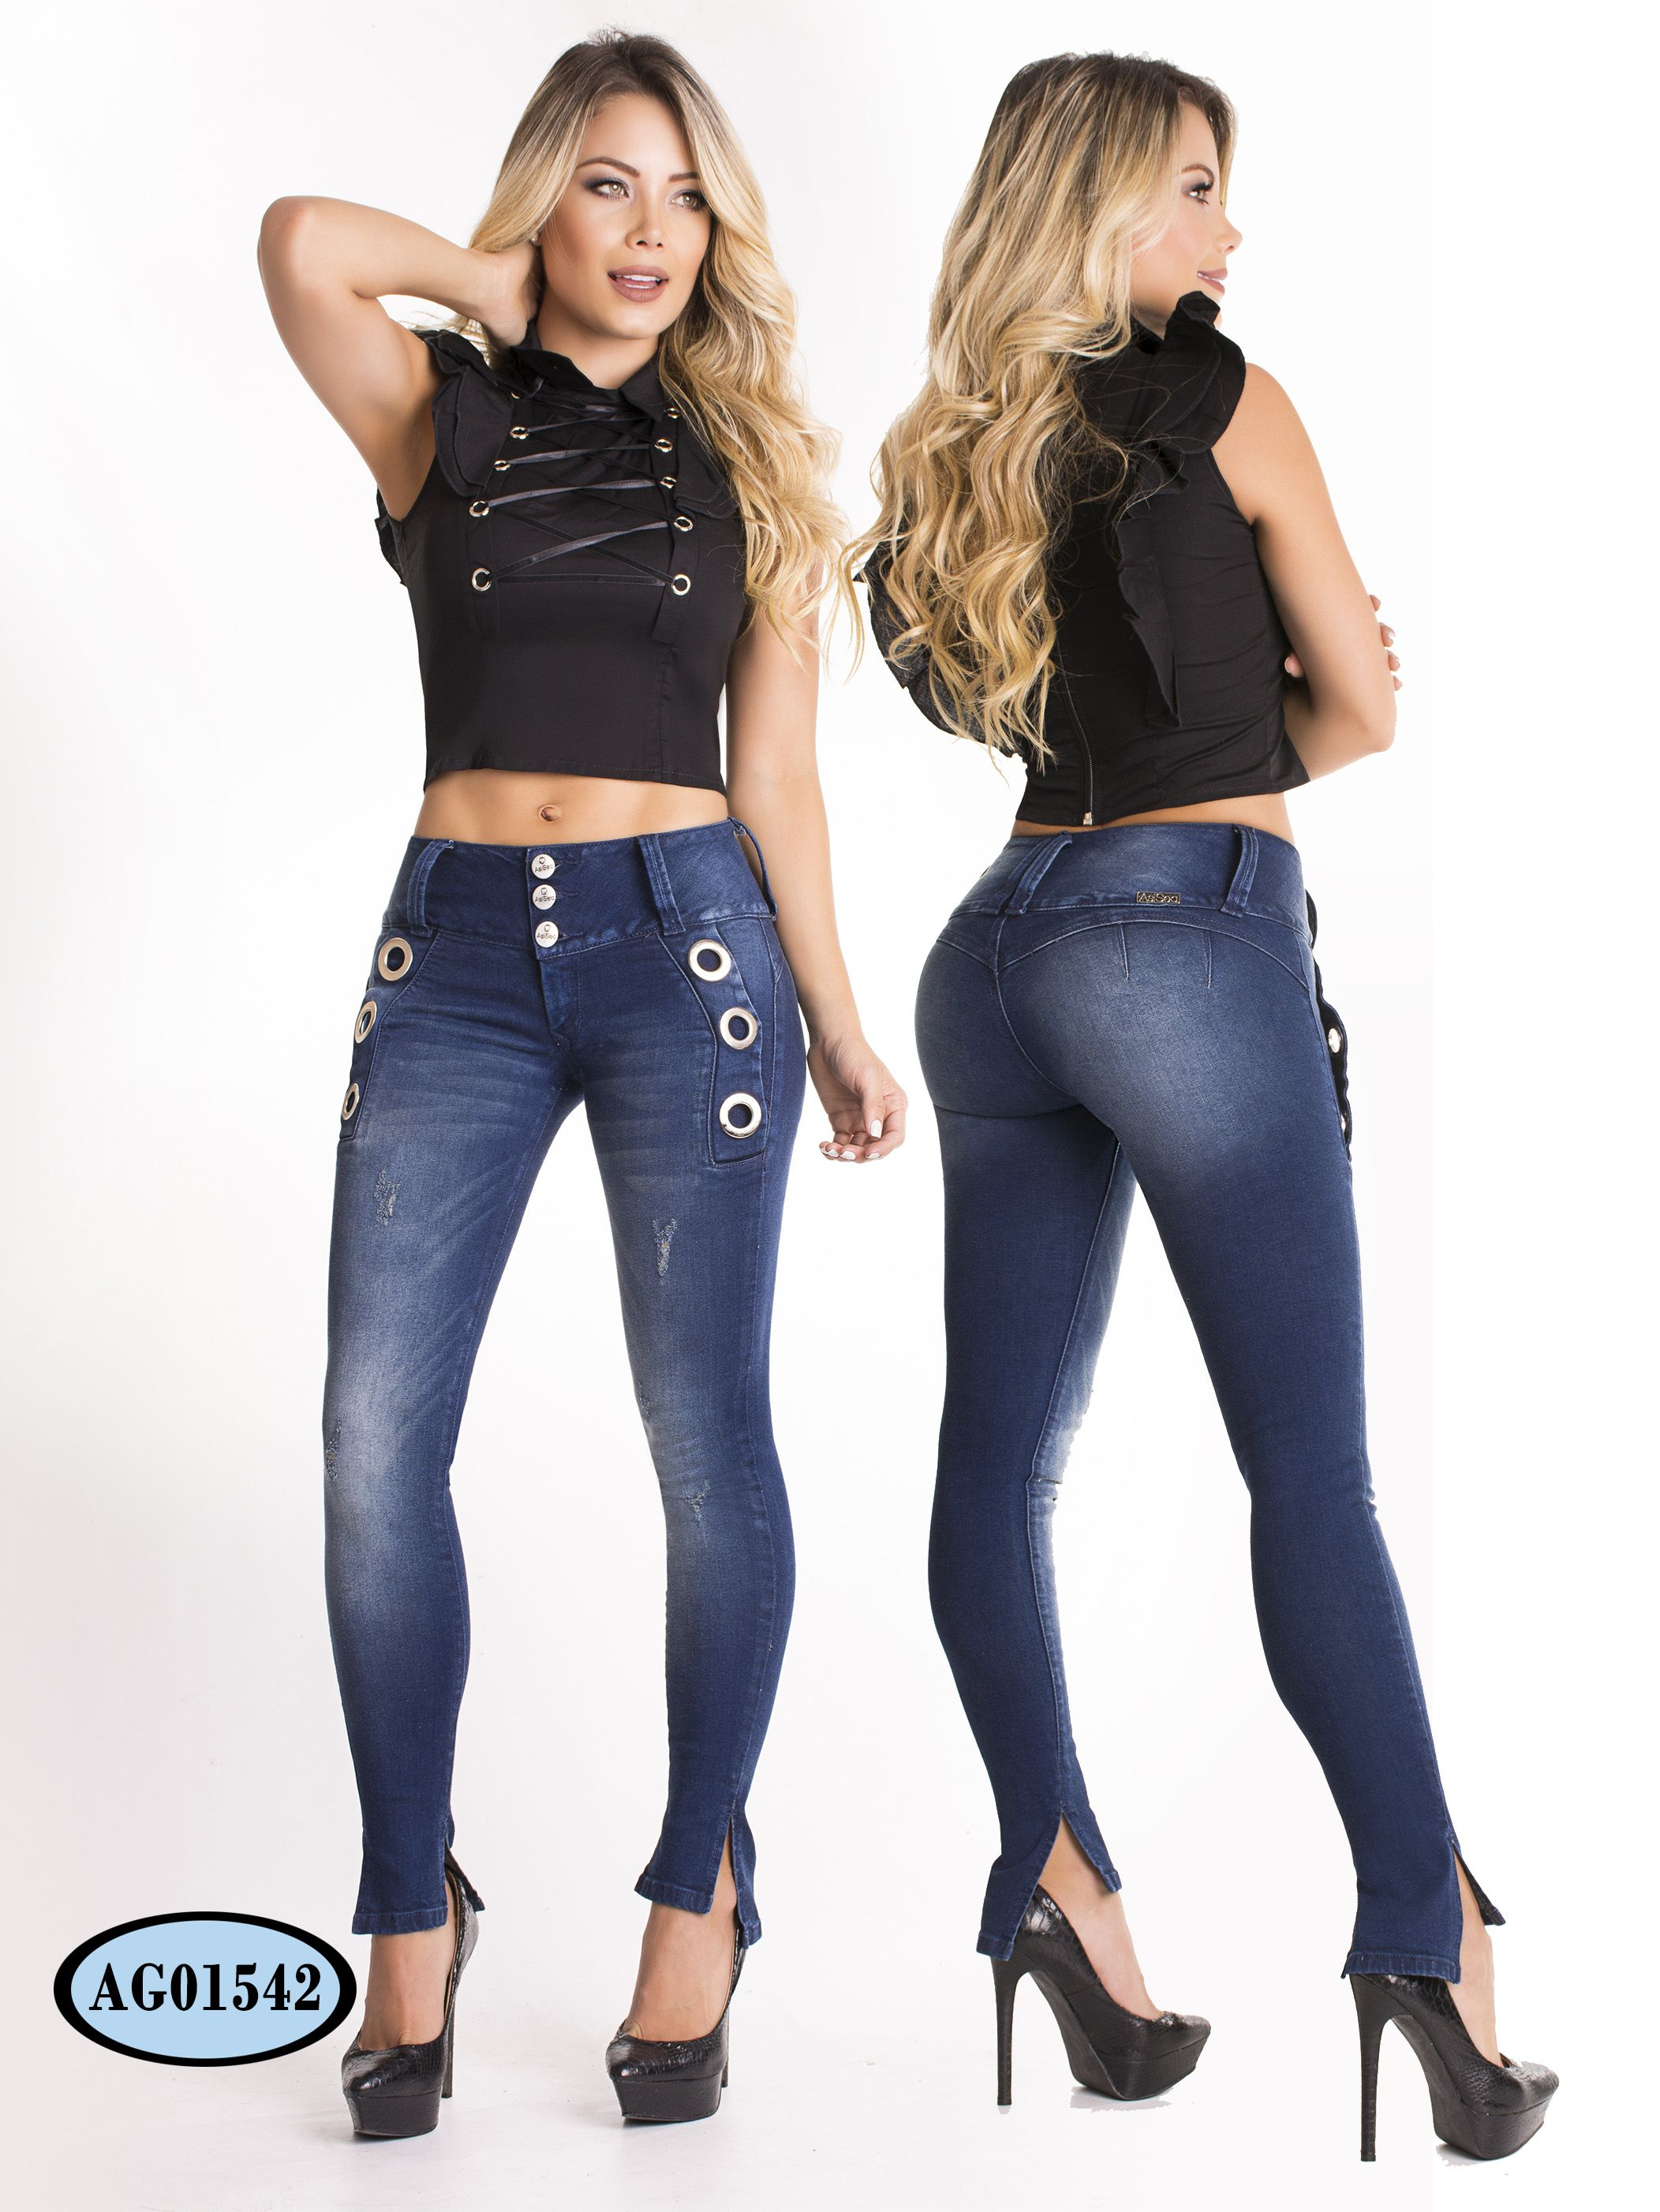 4e52873abeb Asi Sea Colombian Buttlifting Jeans Collection. Latest trends